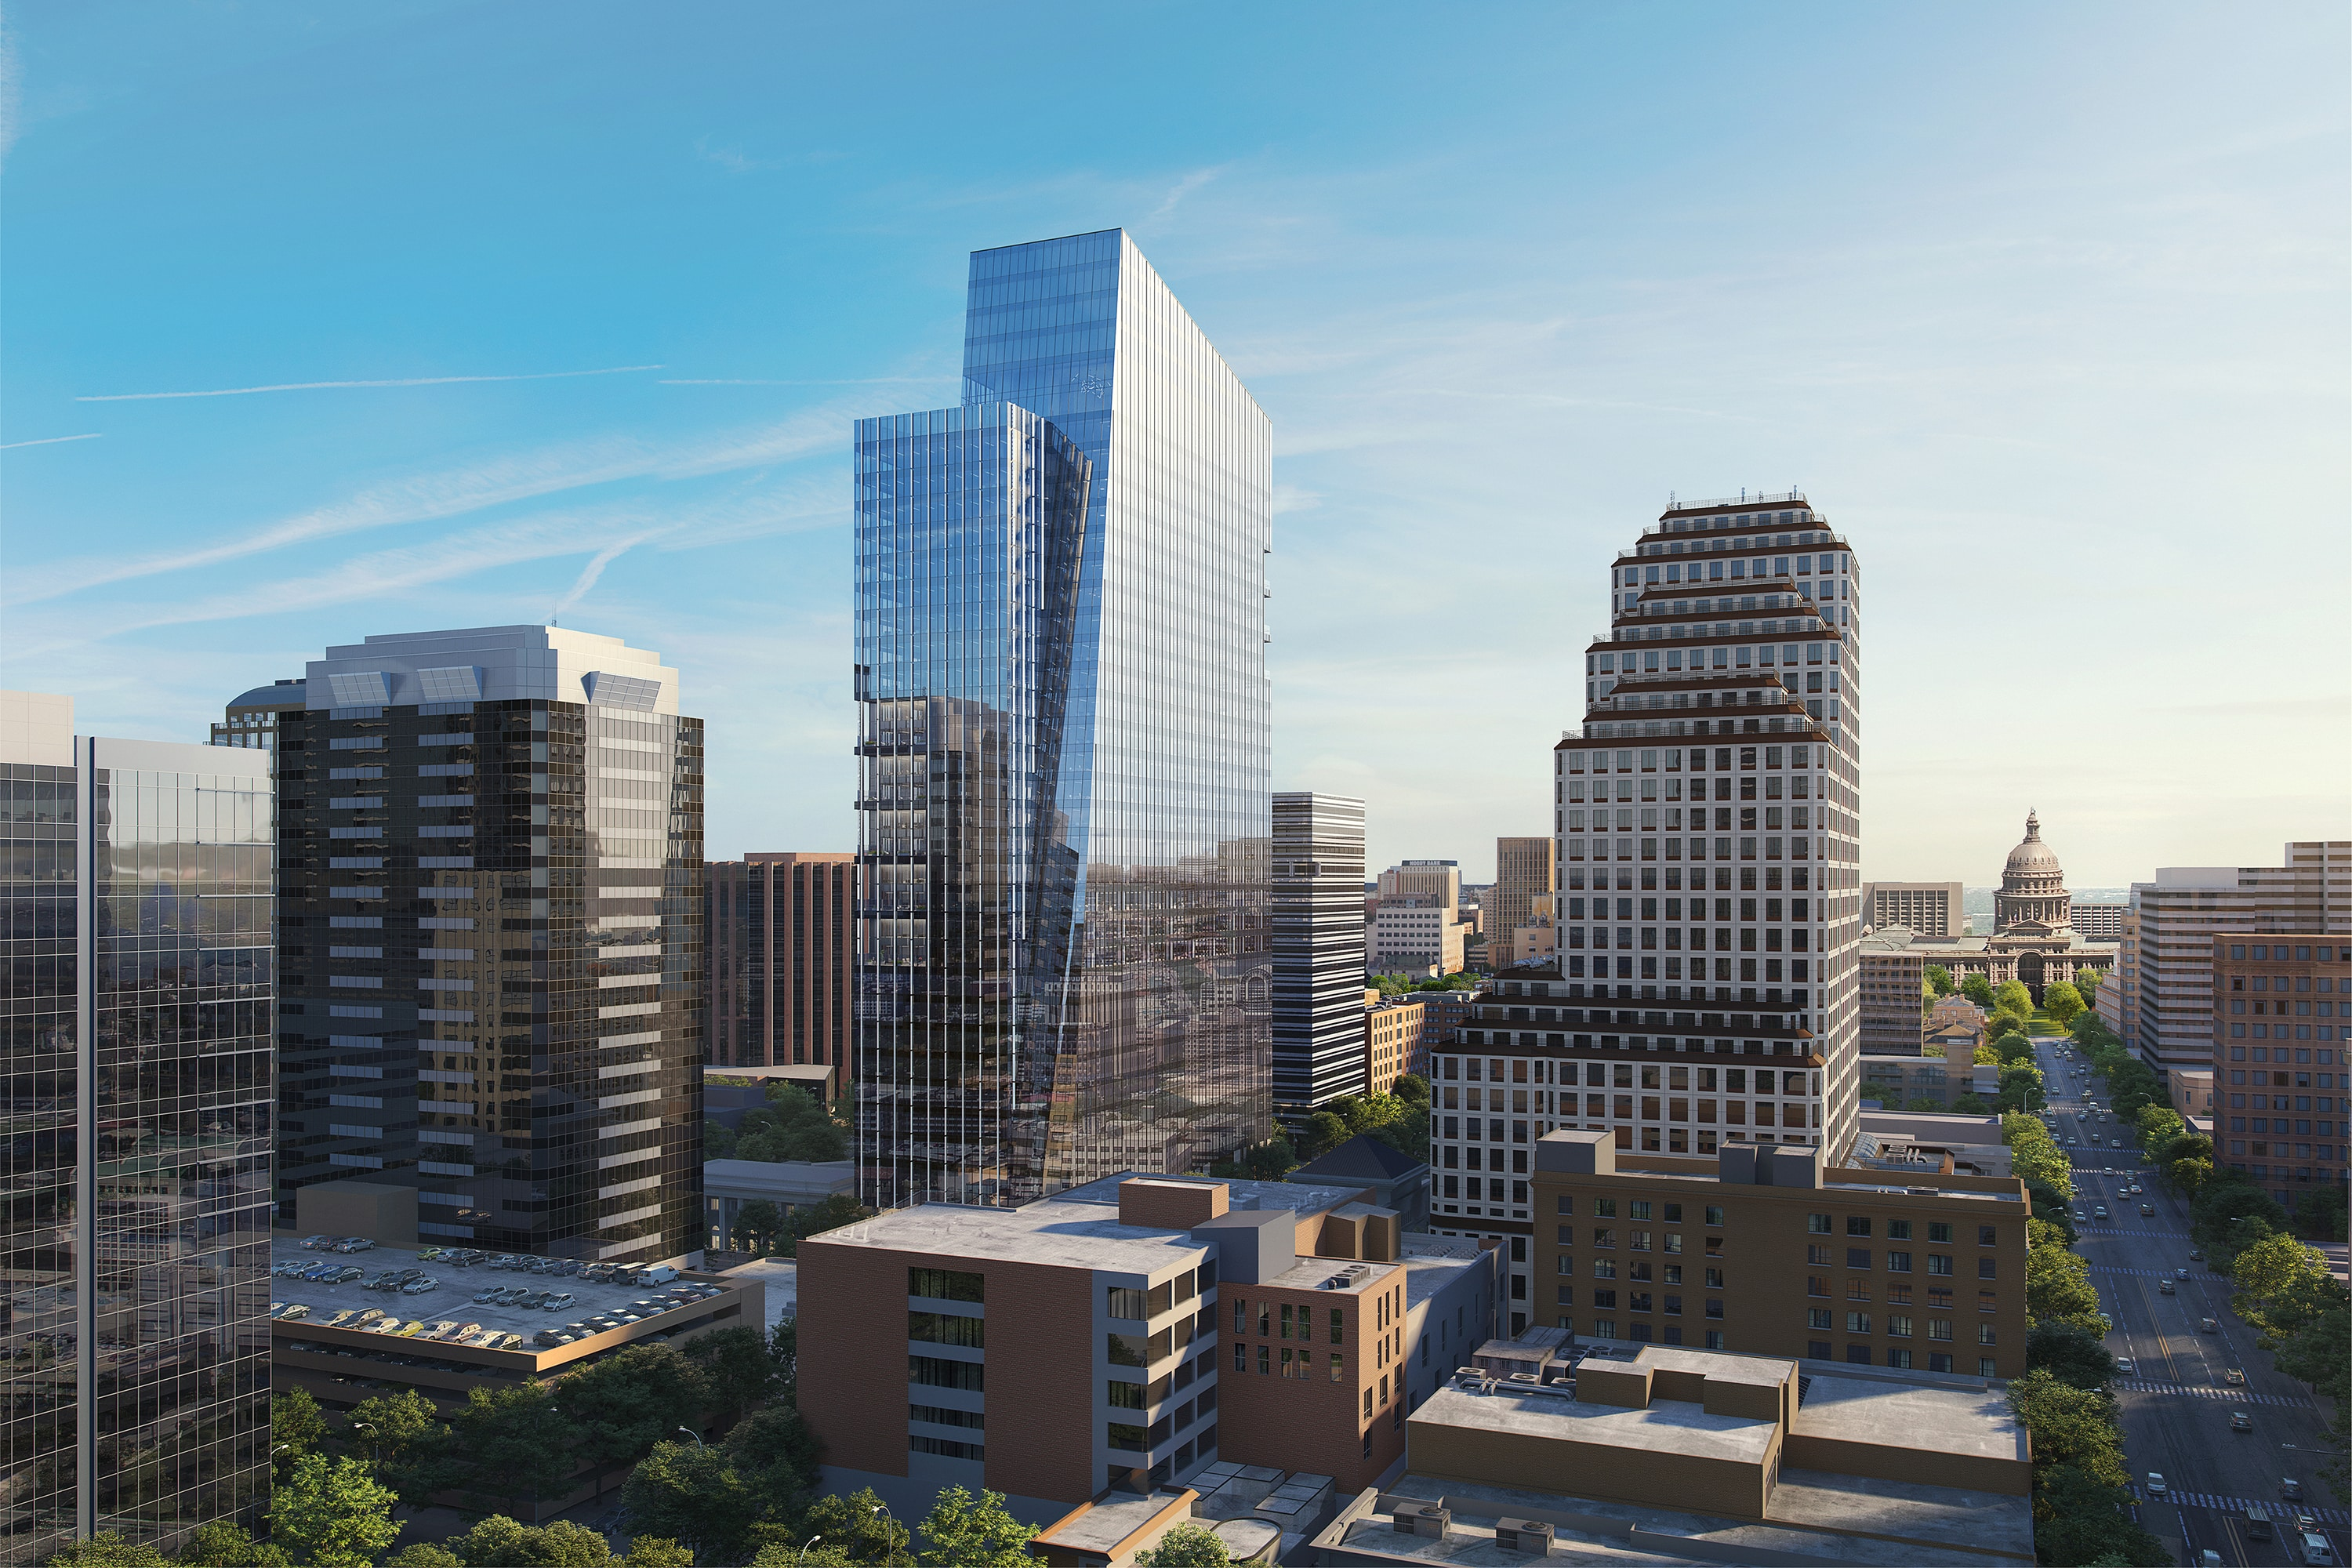 200 West 6th Street Rendering by Devisual